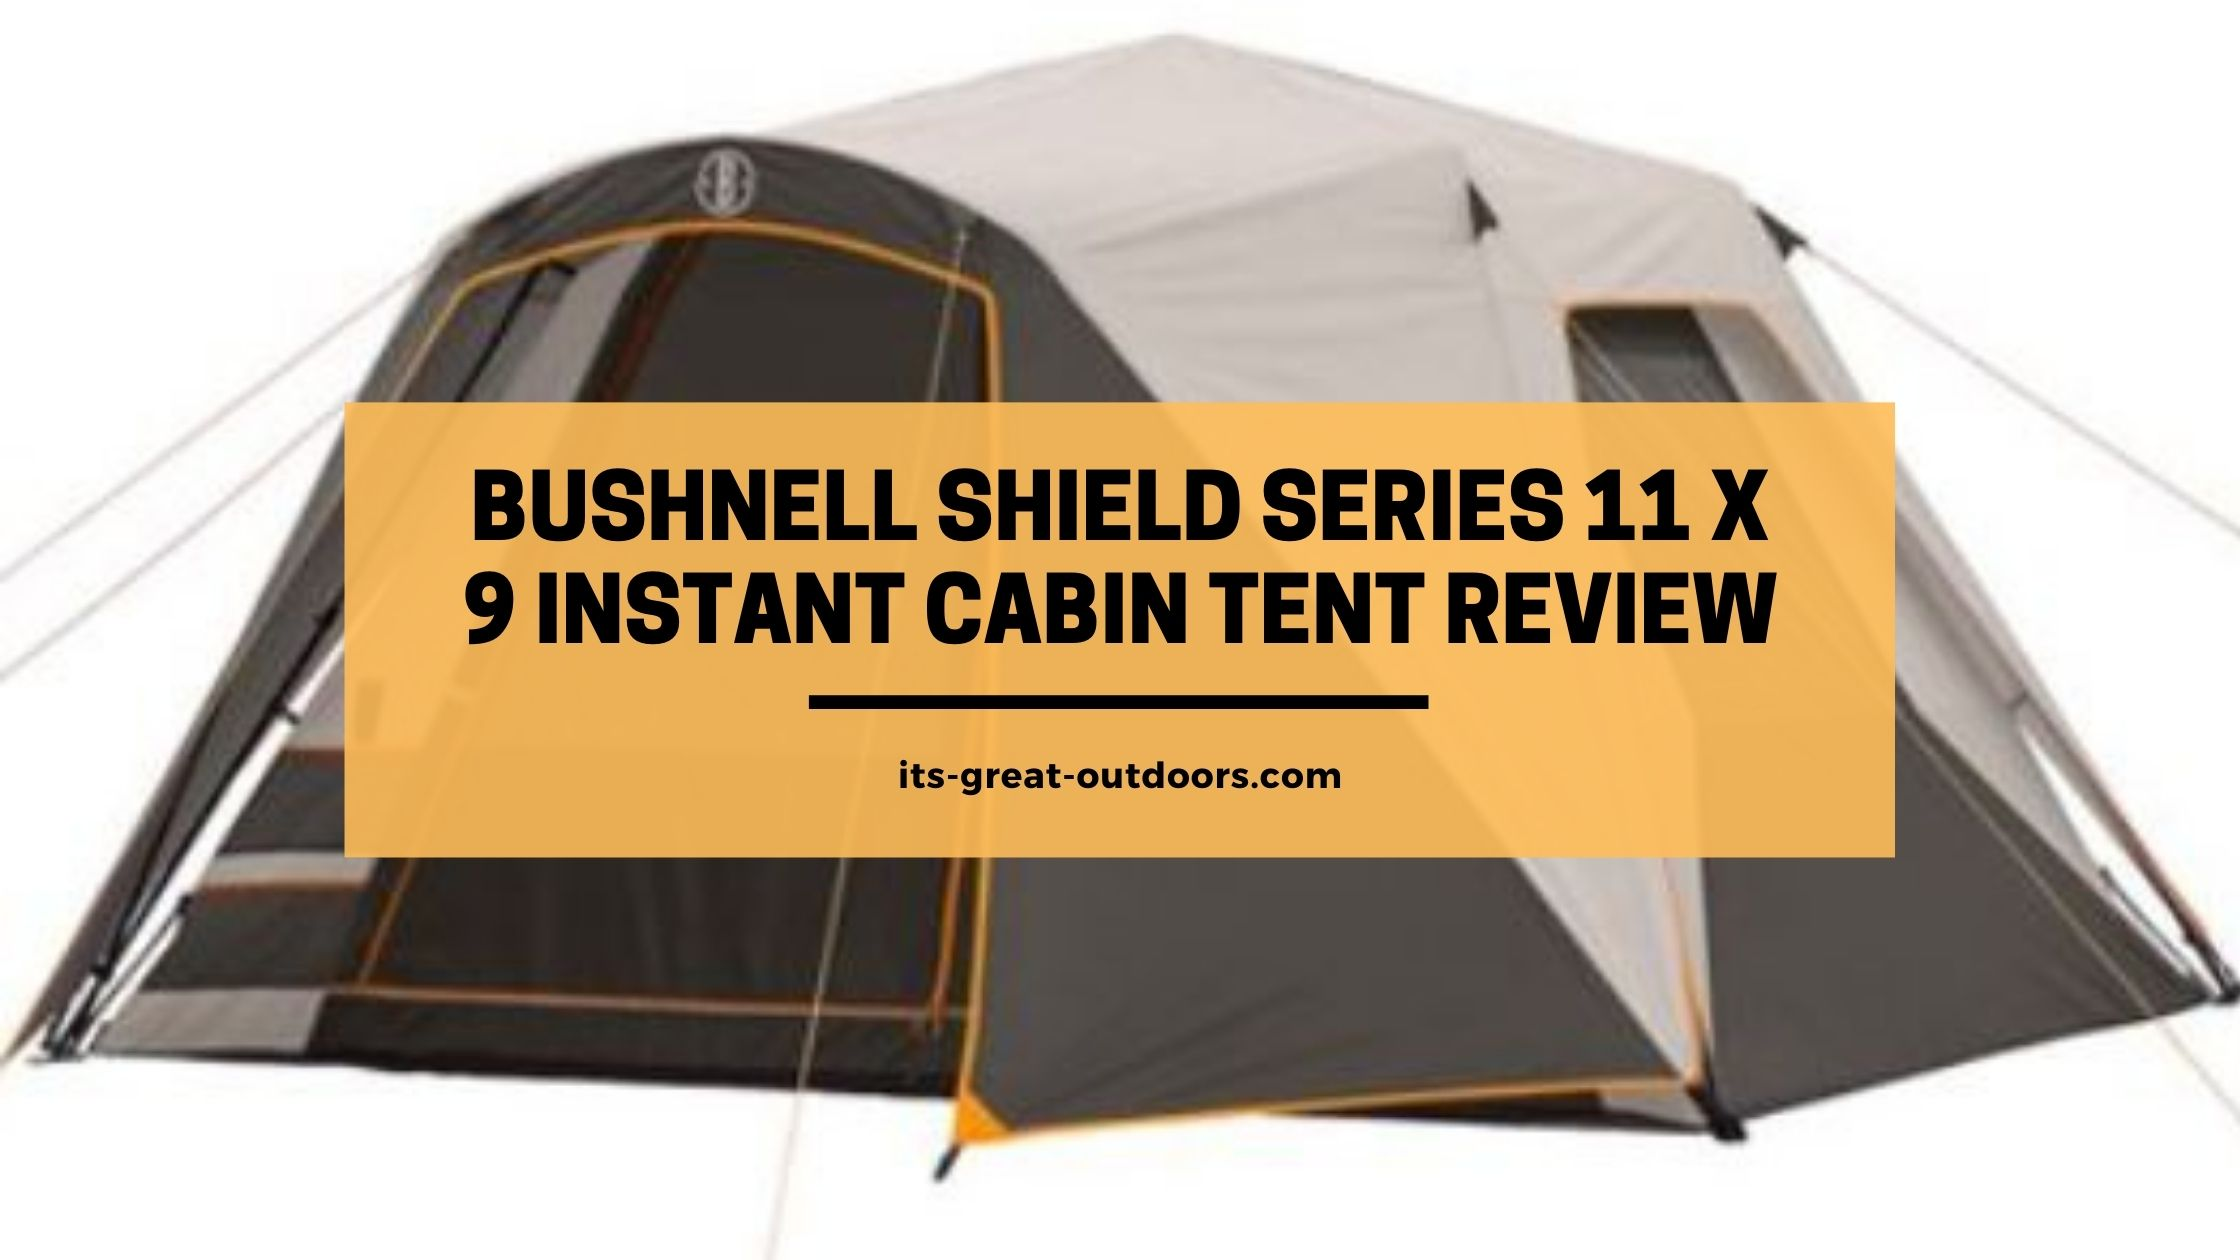 Bushnell Shield Series 11 x 9 Instant Cabin Tent Review